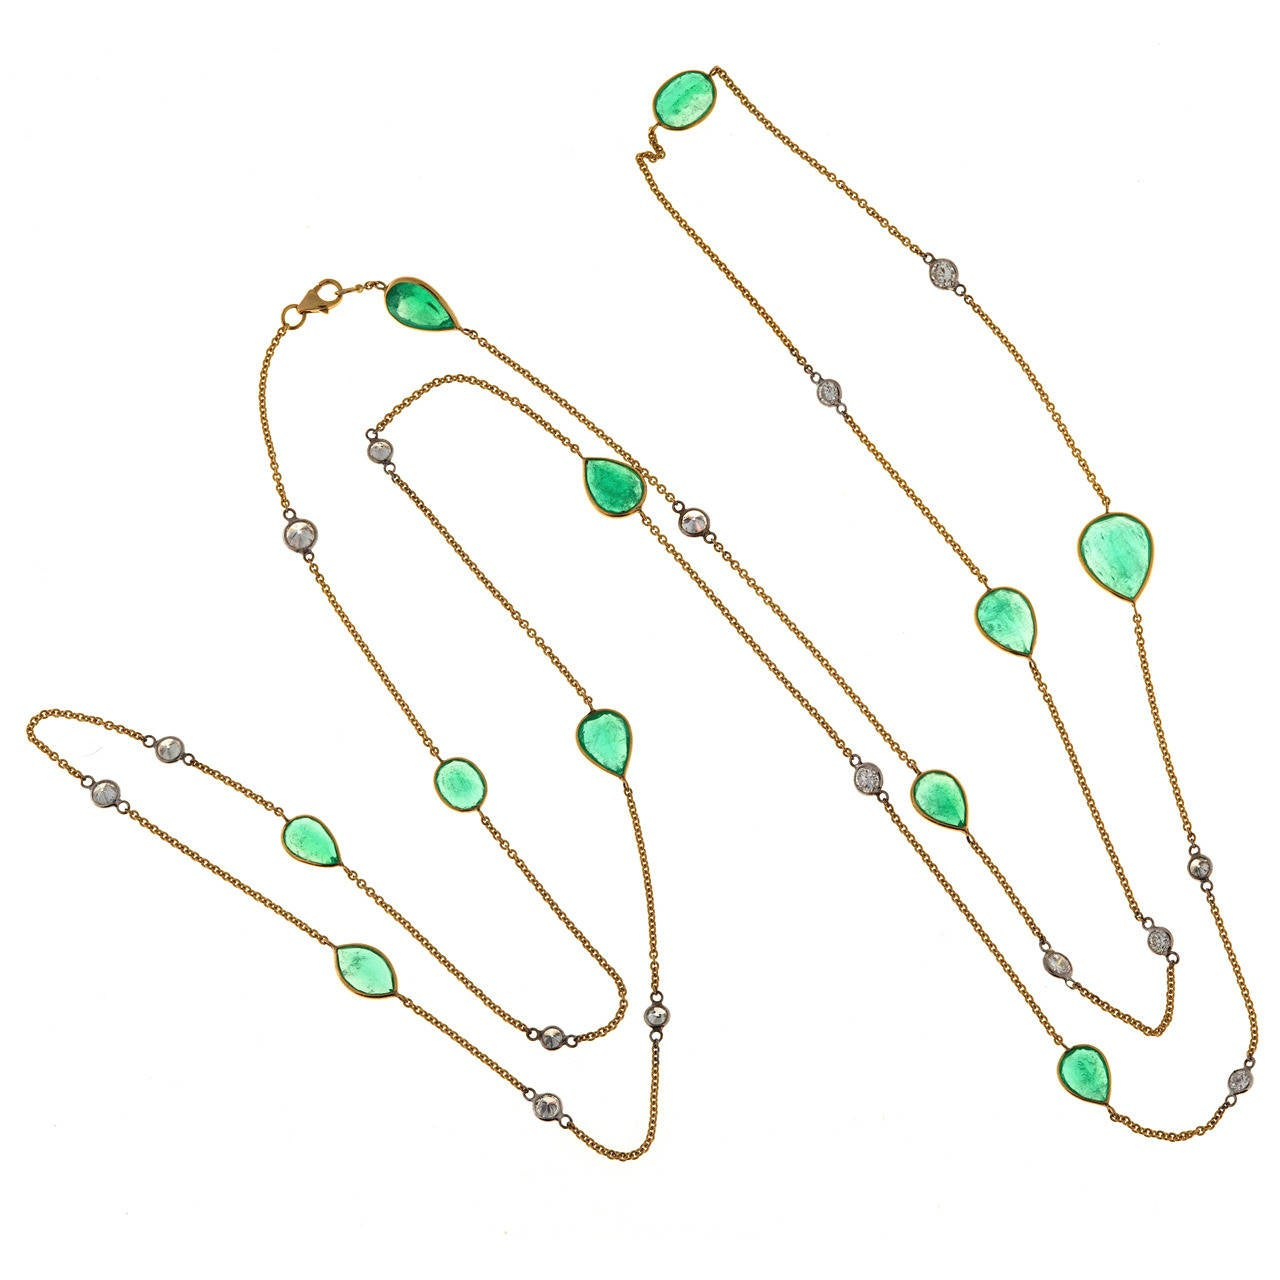 Emerald Diamond by the Yard Style Gold Chain Necklace